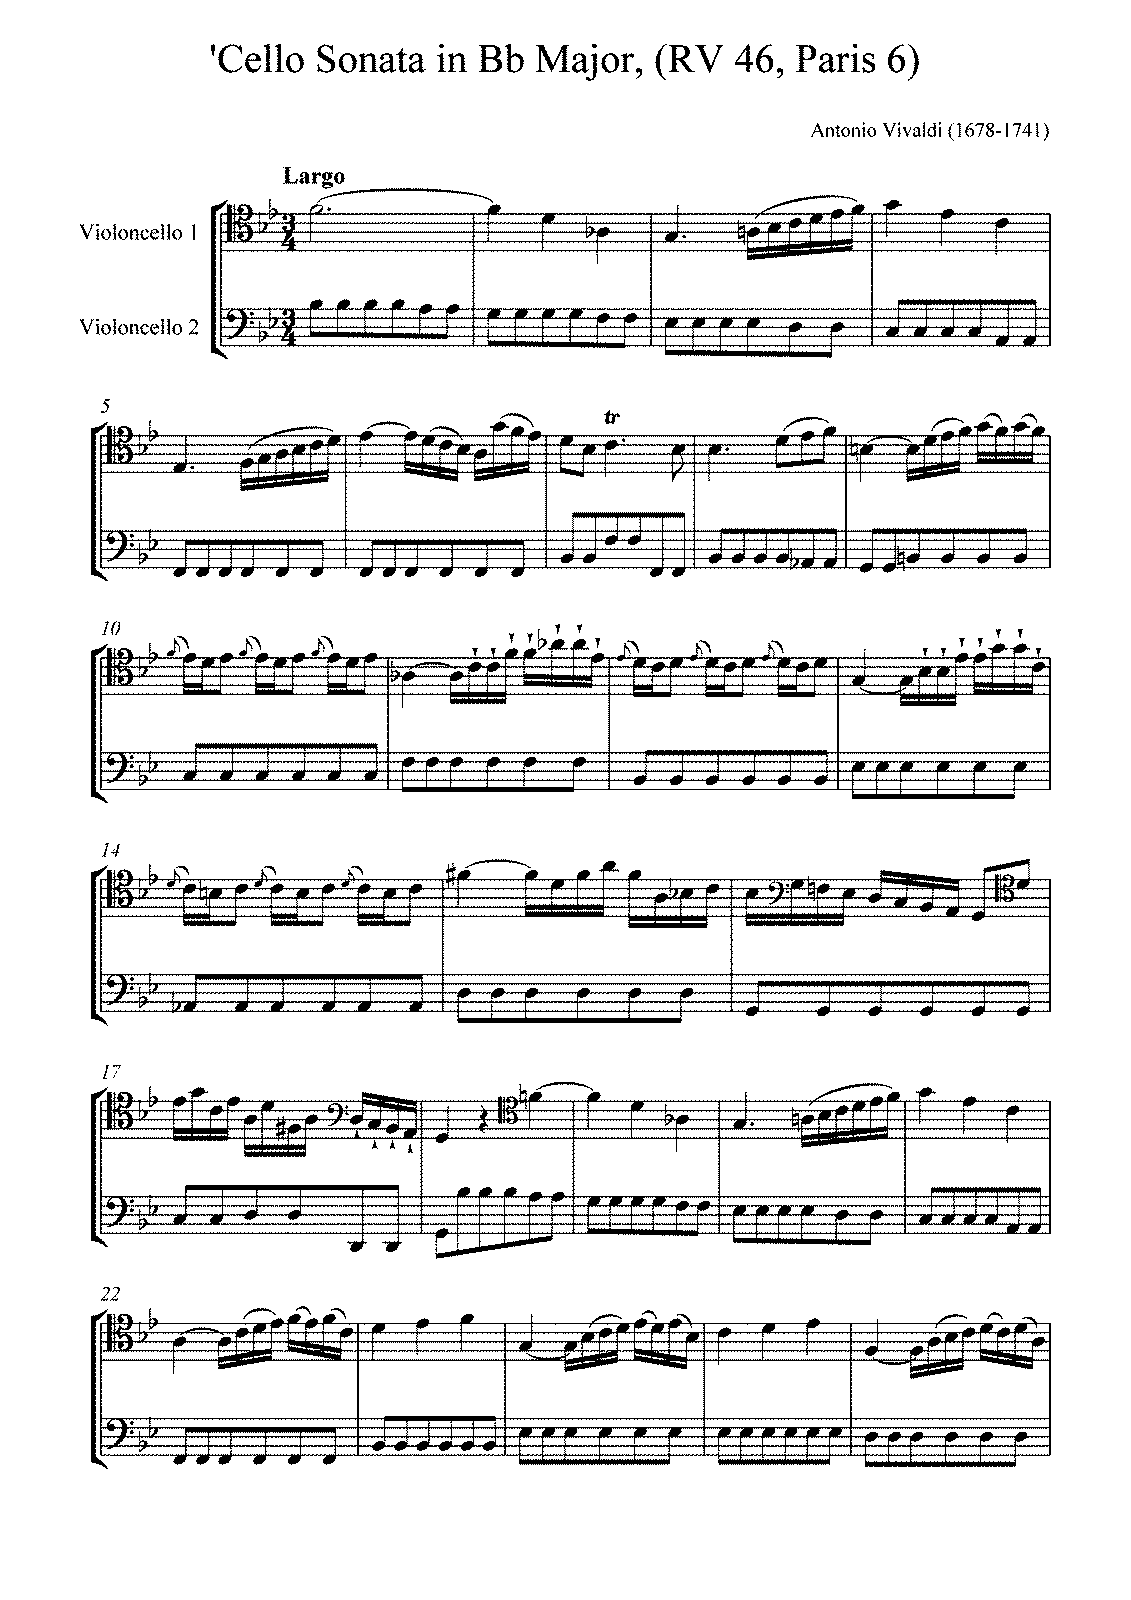 PMLP296673-Vivaldi-Cello-Sonata-RV46.pdf